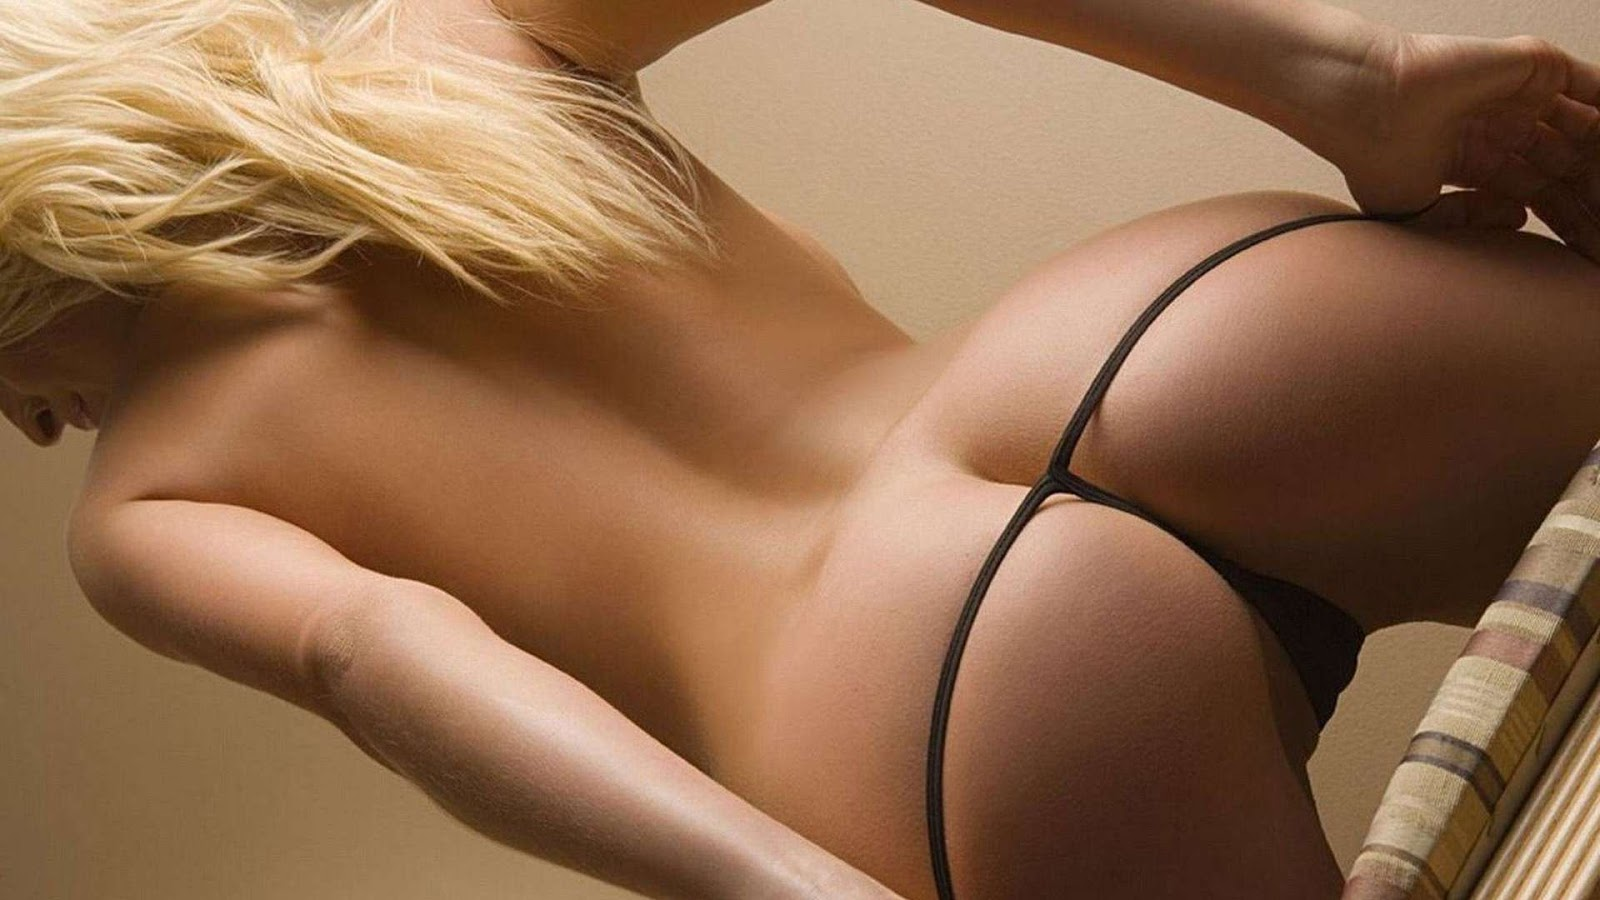 Blonde with great ass in an optimal position 2